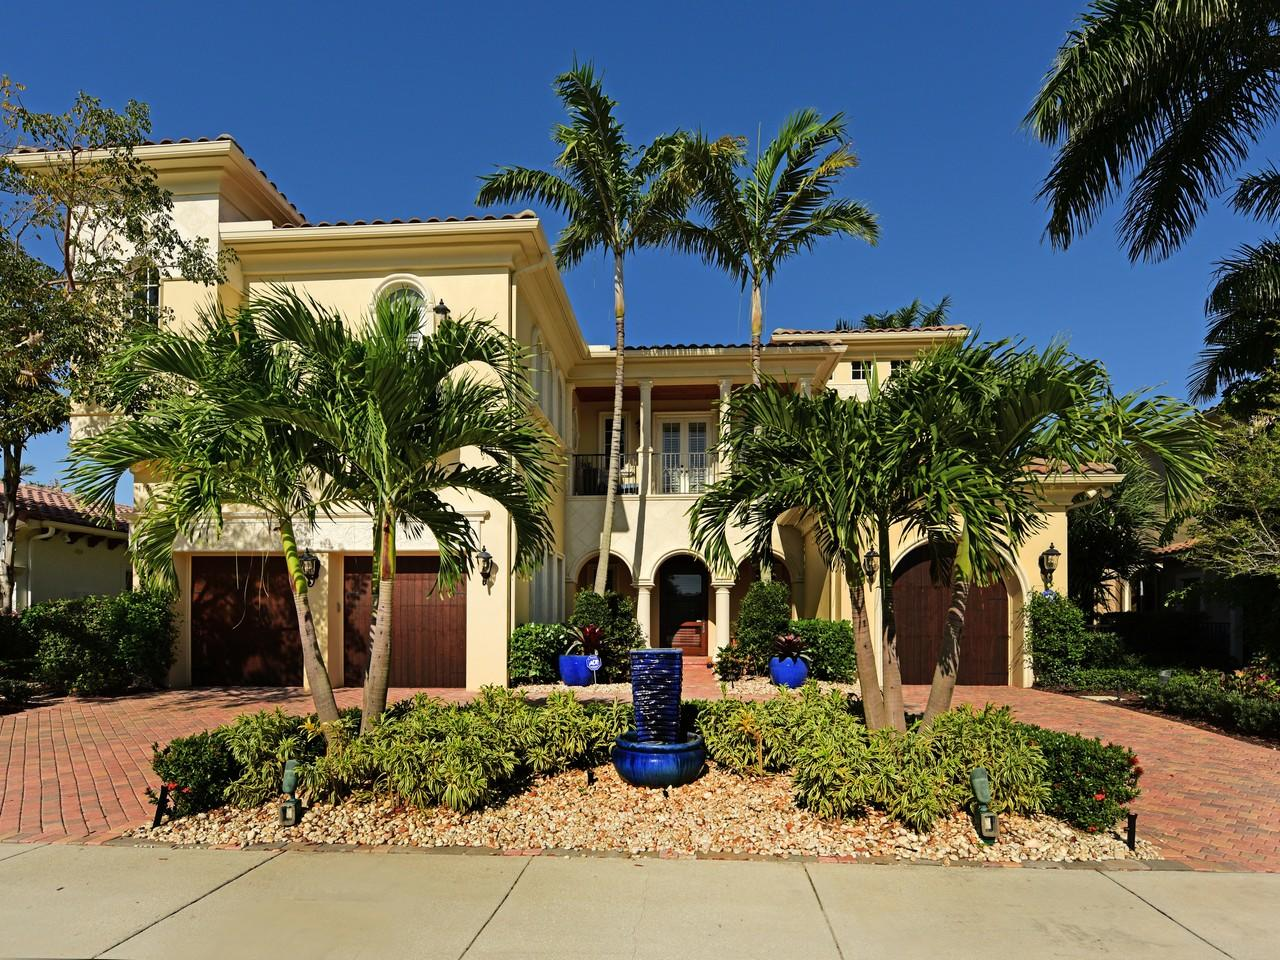 11503 Green Bayberry Drive, Palm Beach Gardens, Florida 33410, 4 Bedrooms Bedrooms, ,4.1 BathroomsBathrooms,F,Single family,Green Bayberry,RX-10515280